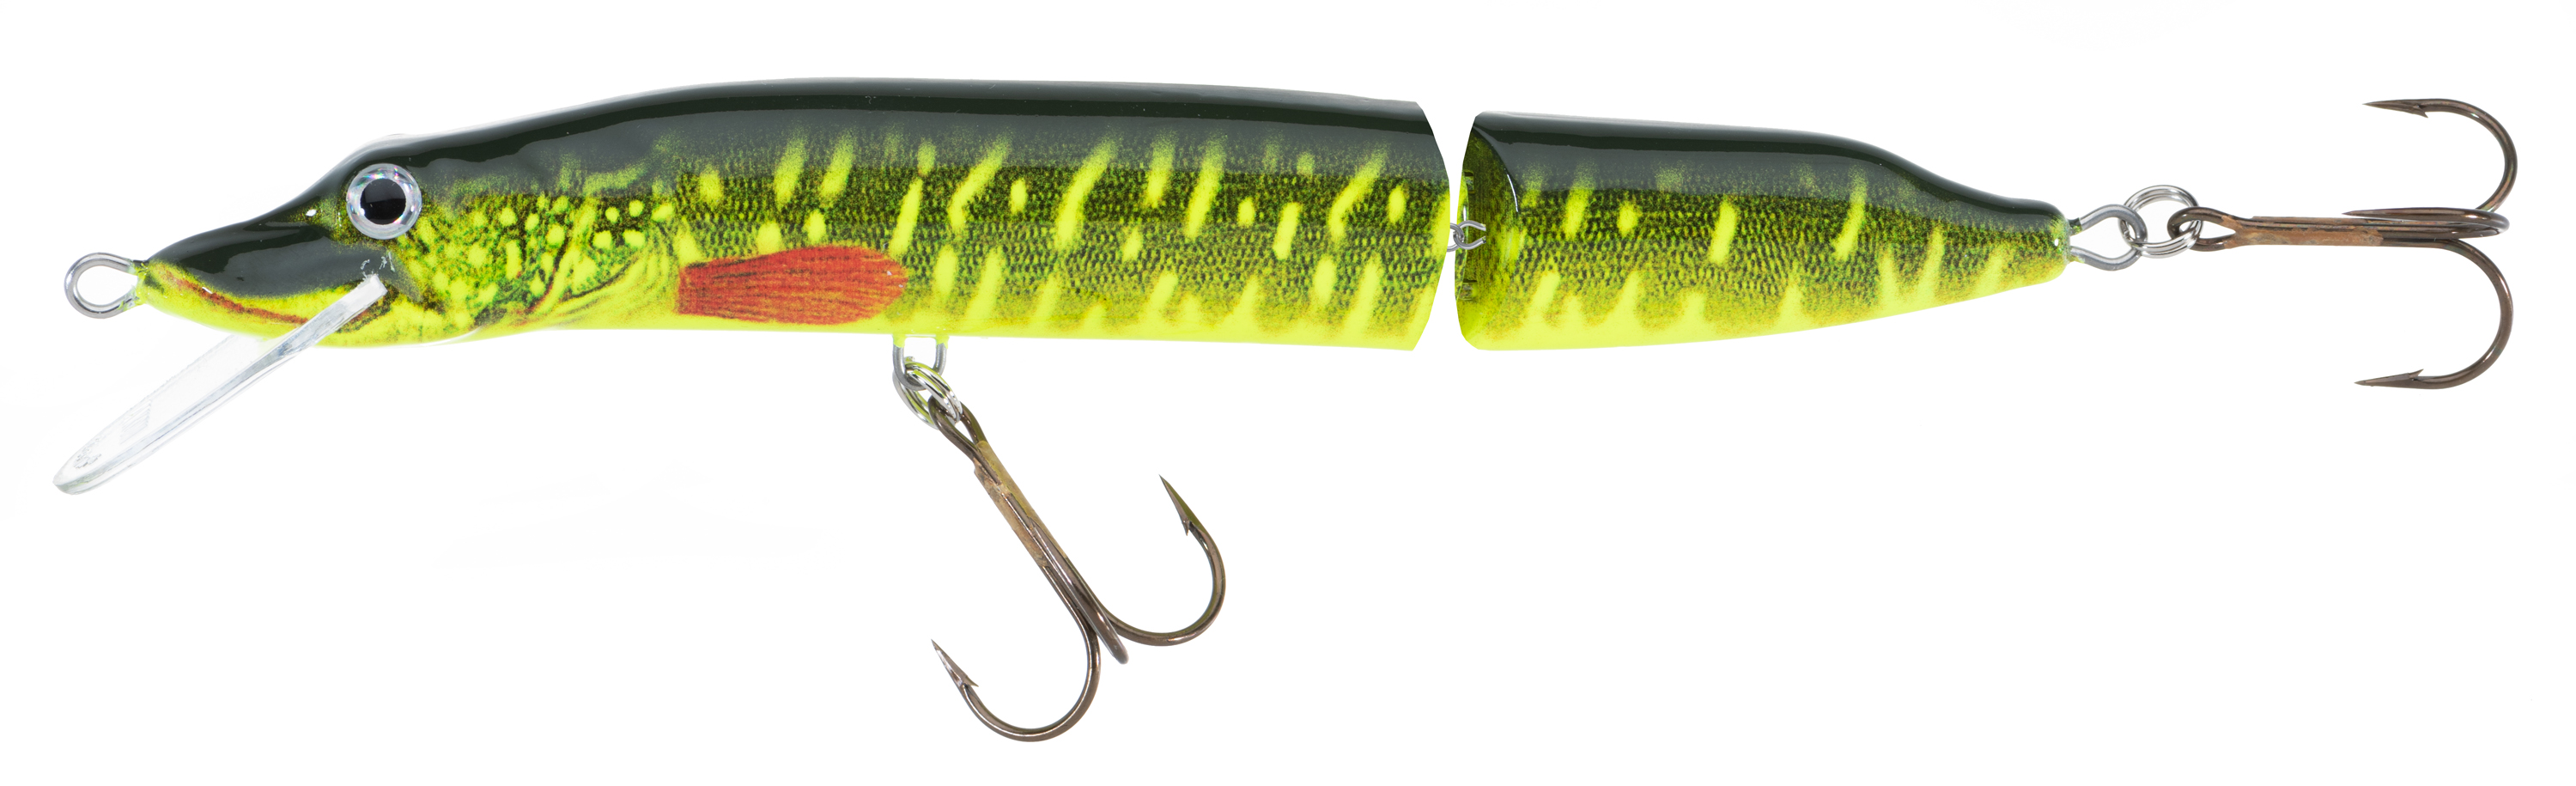 HOLO SELECT PIKE 2-SEC LURES Length 14,0cm Version F Colour PF